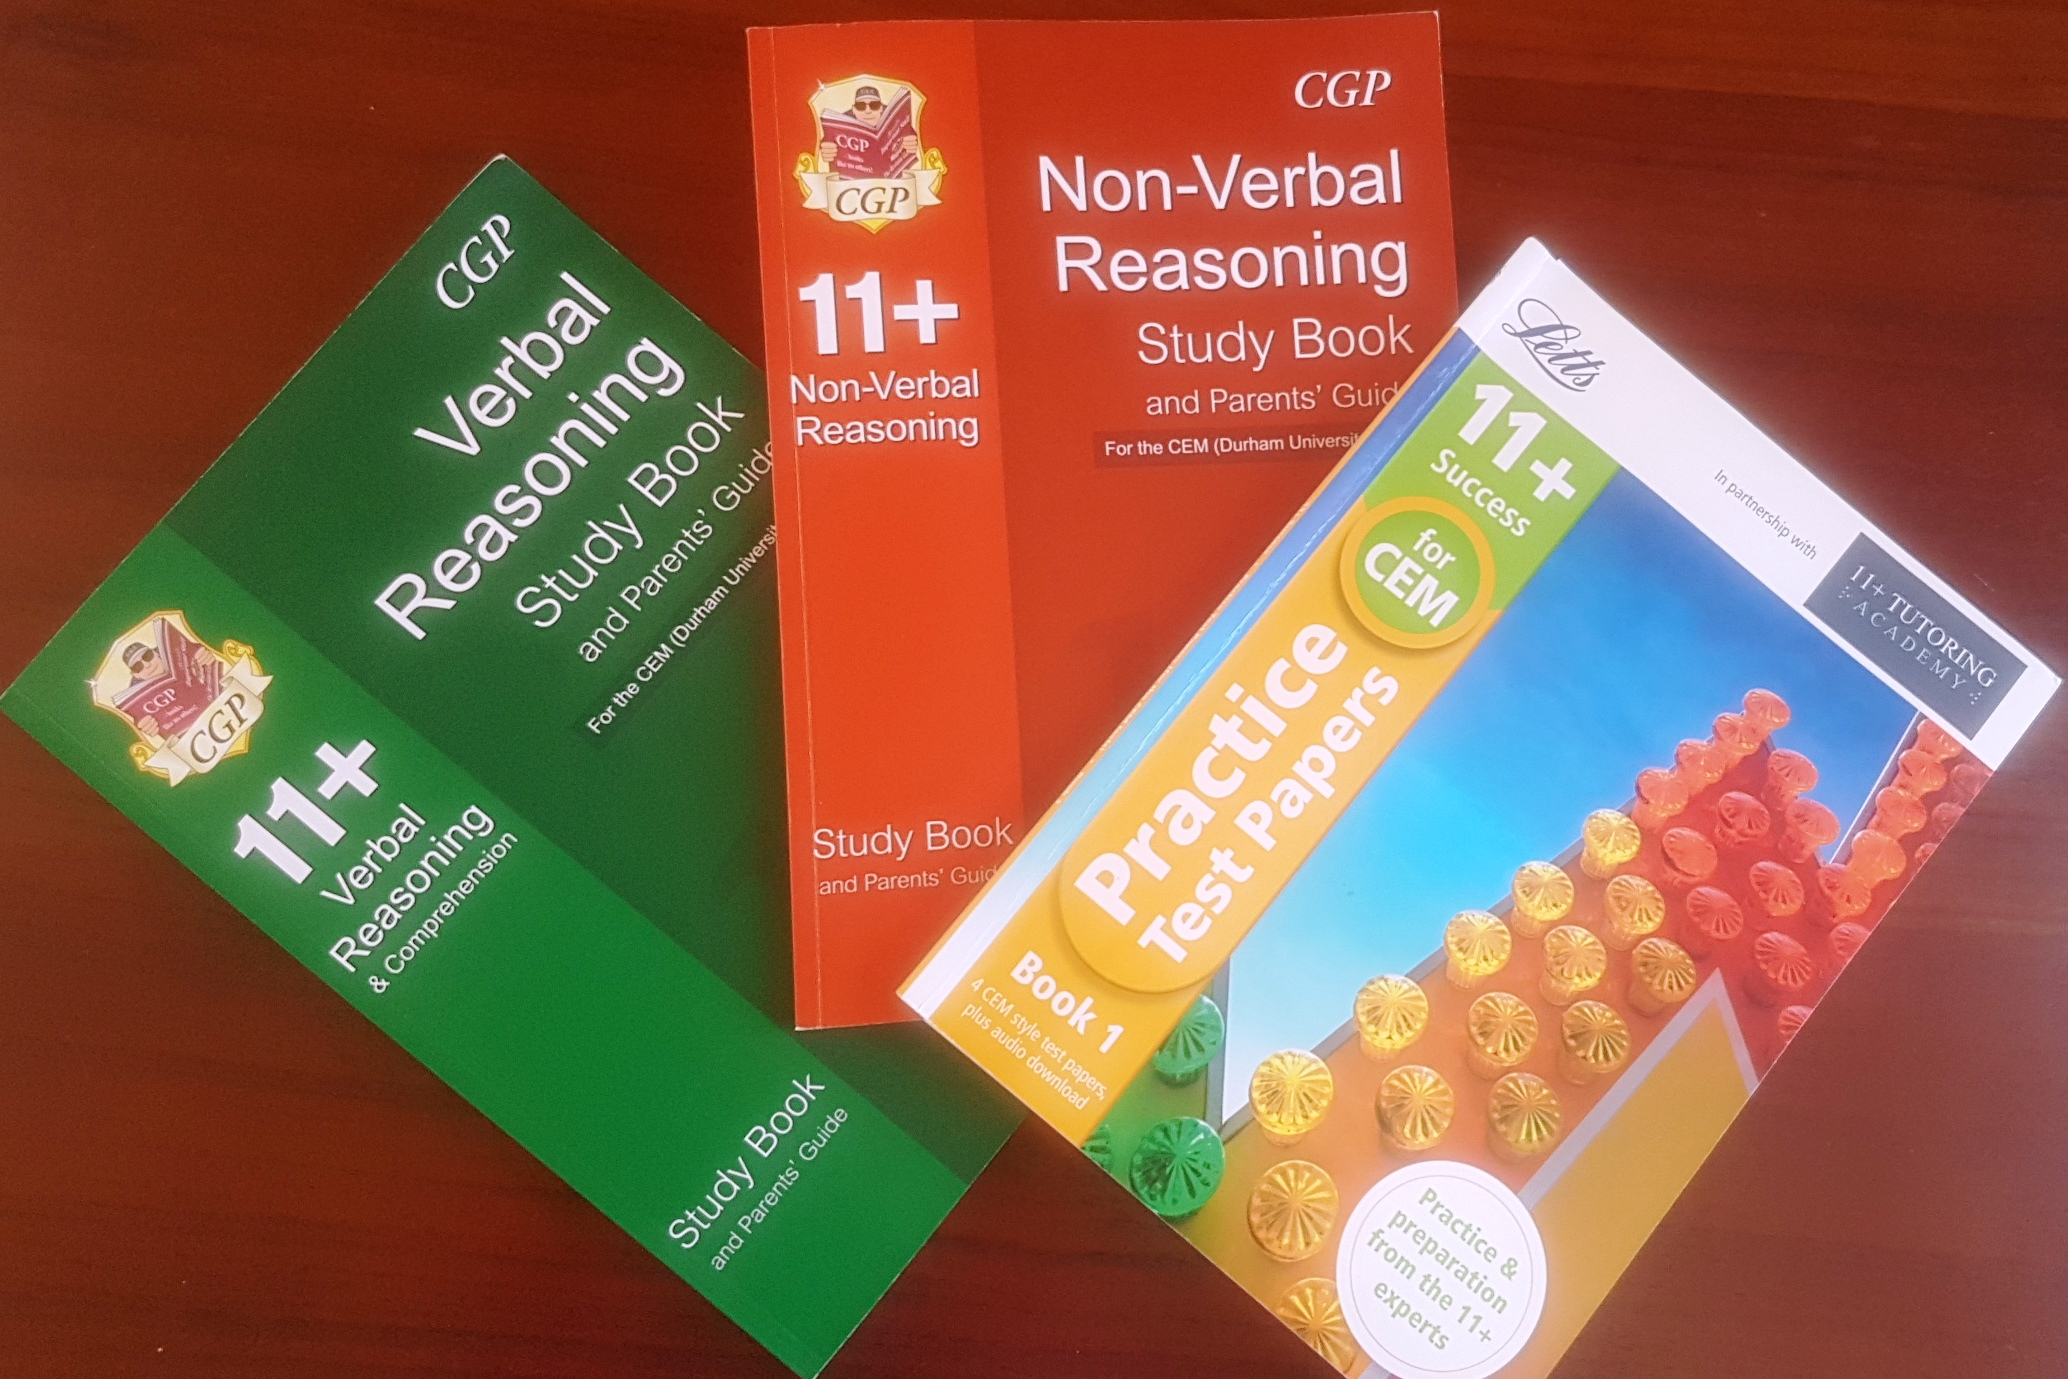 revision books, 11+ exam preparation, grammar school entrance exam, preparing for the 11+, preparing for the grammar school entrance exam, late entrance exam, grammar late entrance test